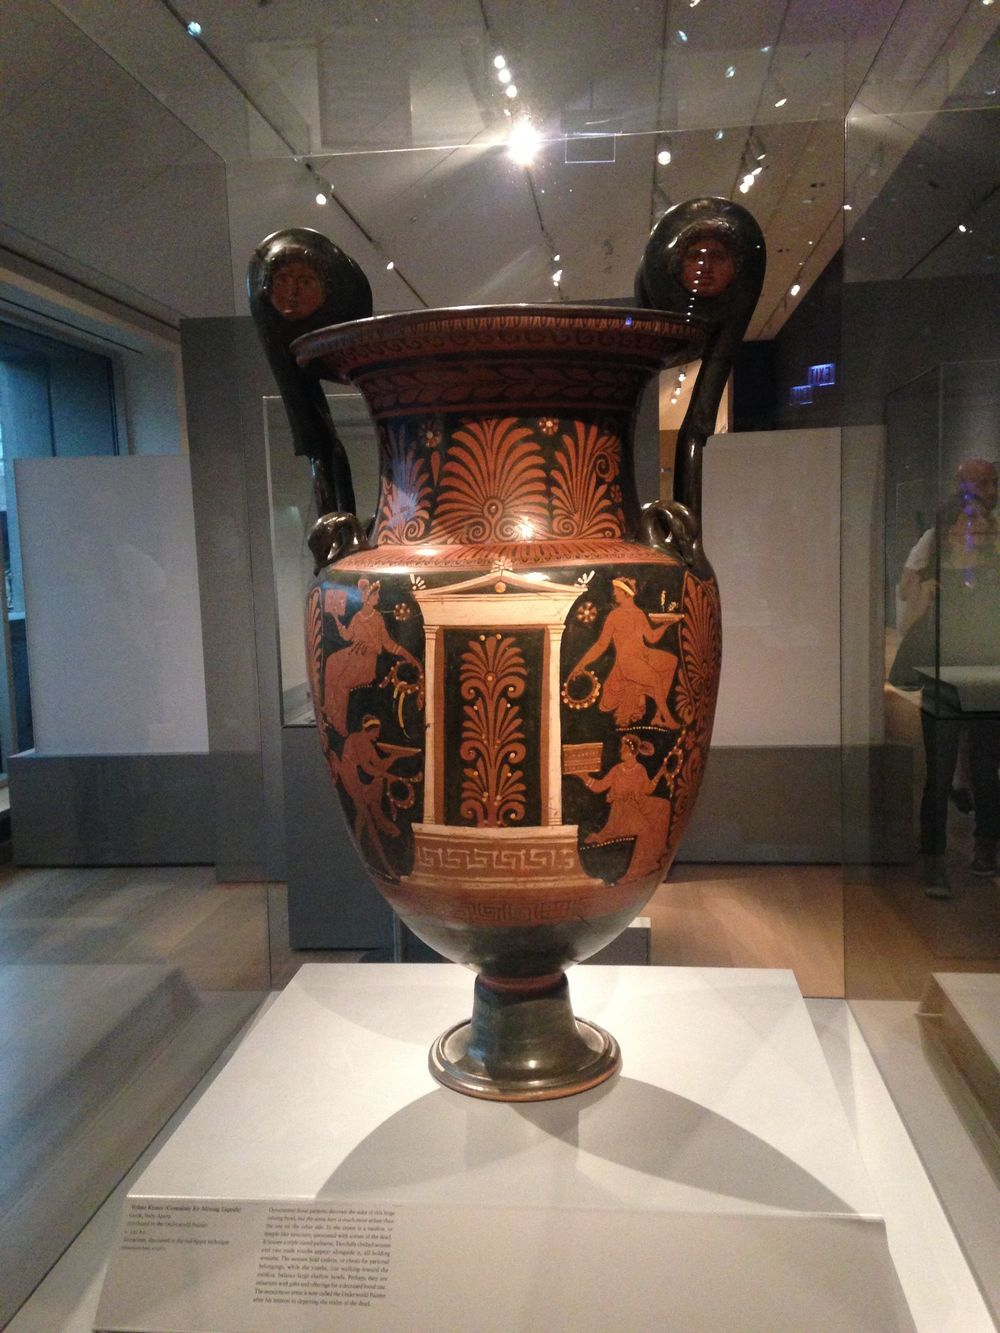 A photo of one of the Greek Crator's from the Chicago Art Institute I walk by each day.